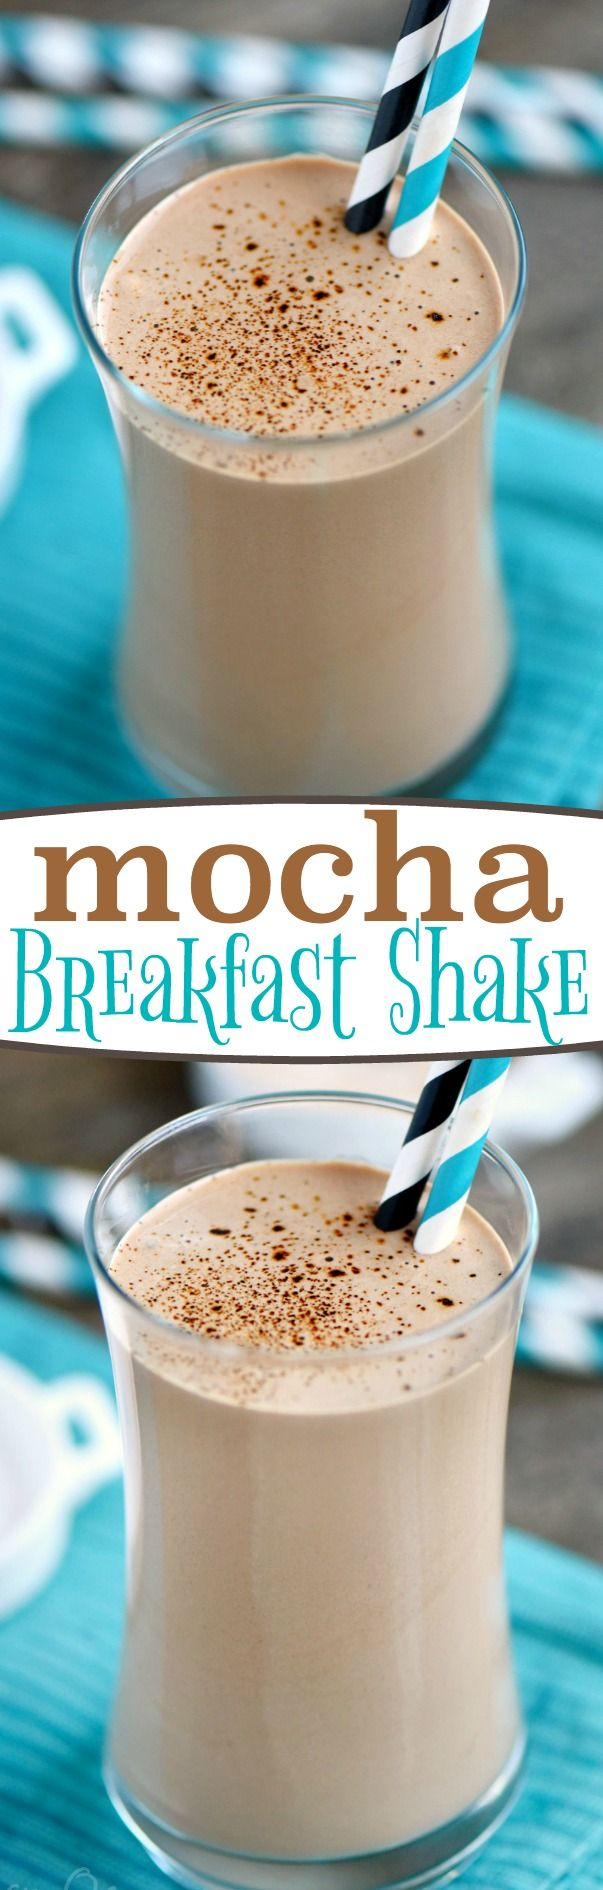 This delicious Mocha Breakfast Shake is made with Greek yogurt for a wake-me-up, protein-packed breakfast! For those mornings when only coffee AND chocolate will do! // Mom On Timeout: